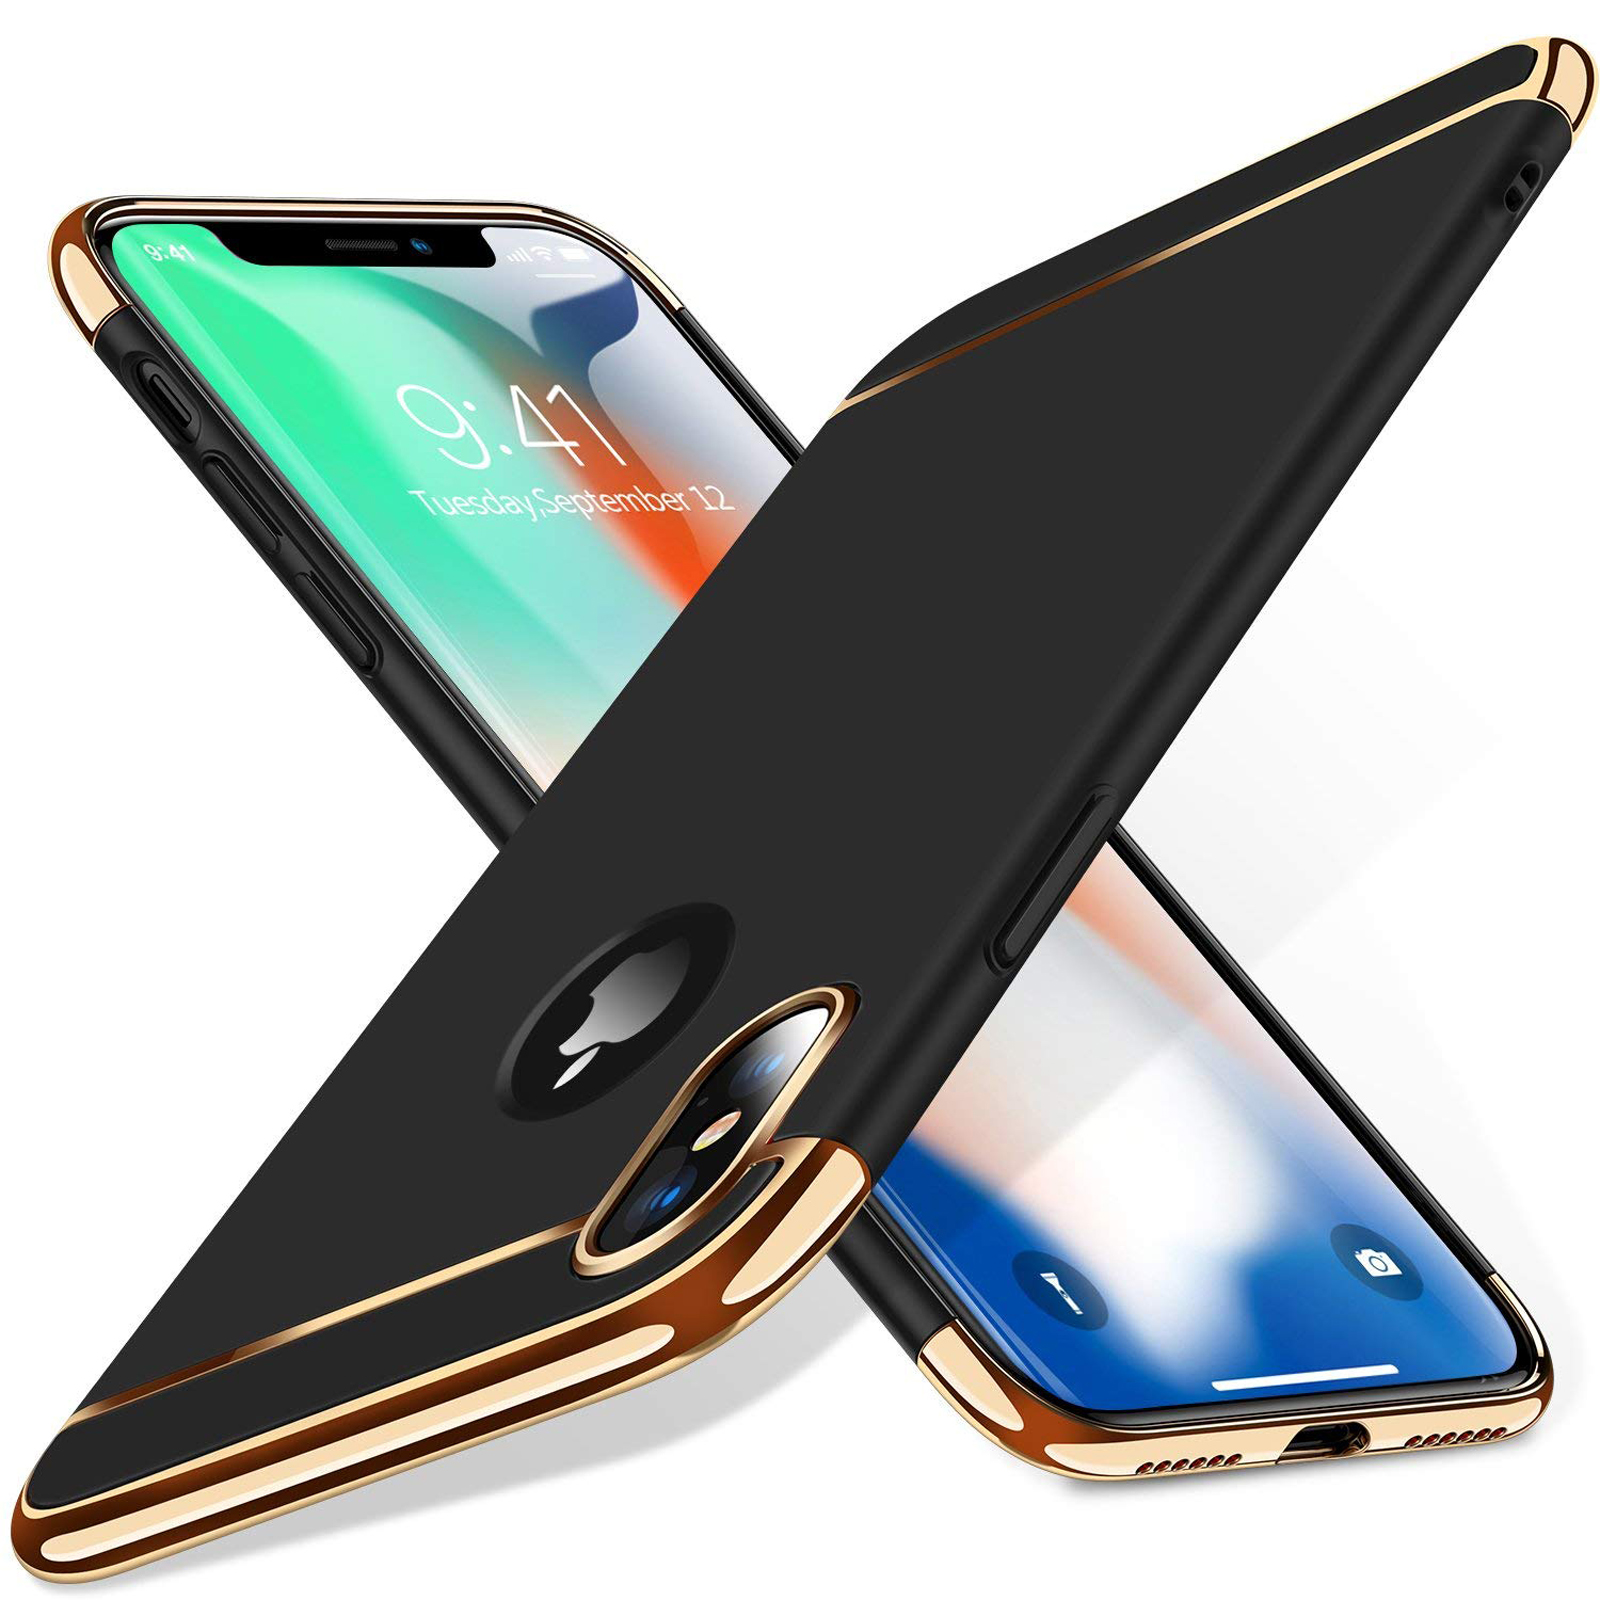 thumbnail 37 - Luxury Matte Case Tempered Glass Cover For Apple iPhone X XS XR Max 10 8 7 6s 6